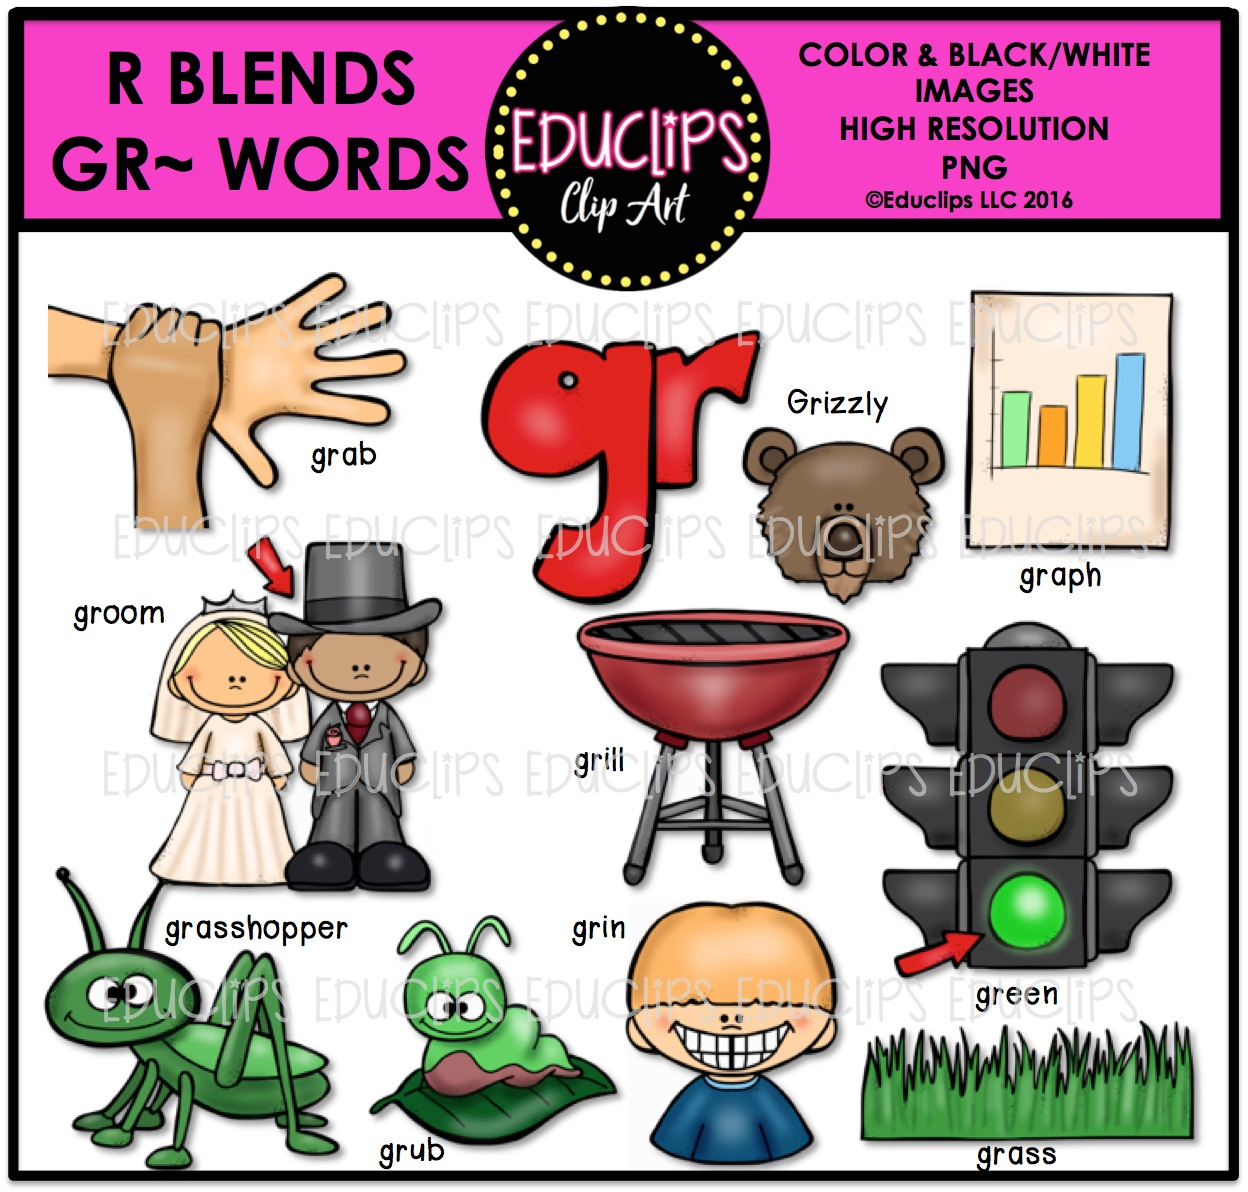 R Blends GR Words Clip Art Bundle (Color and B&W).